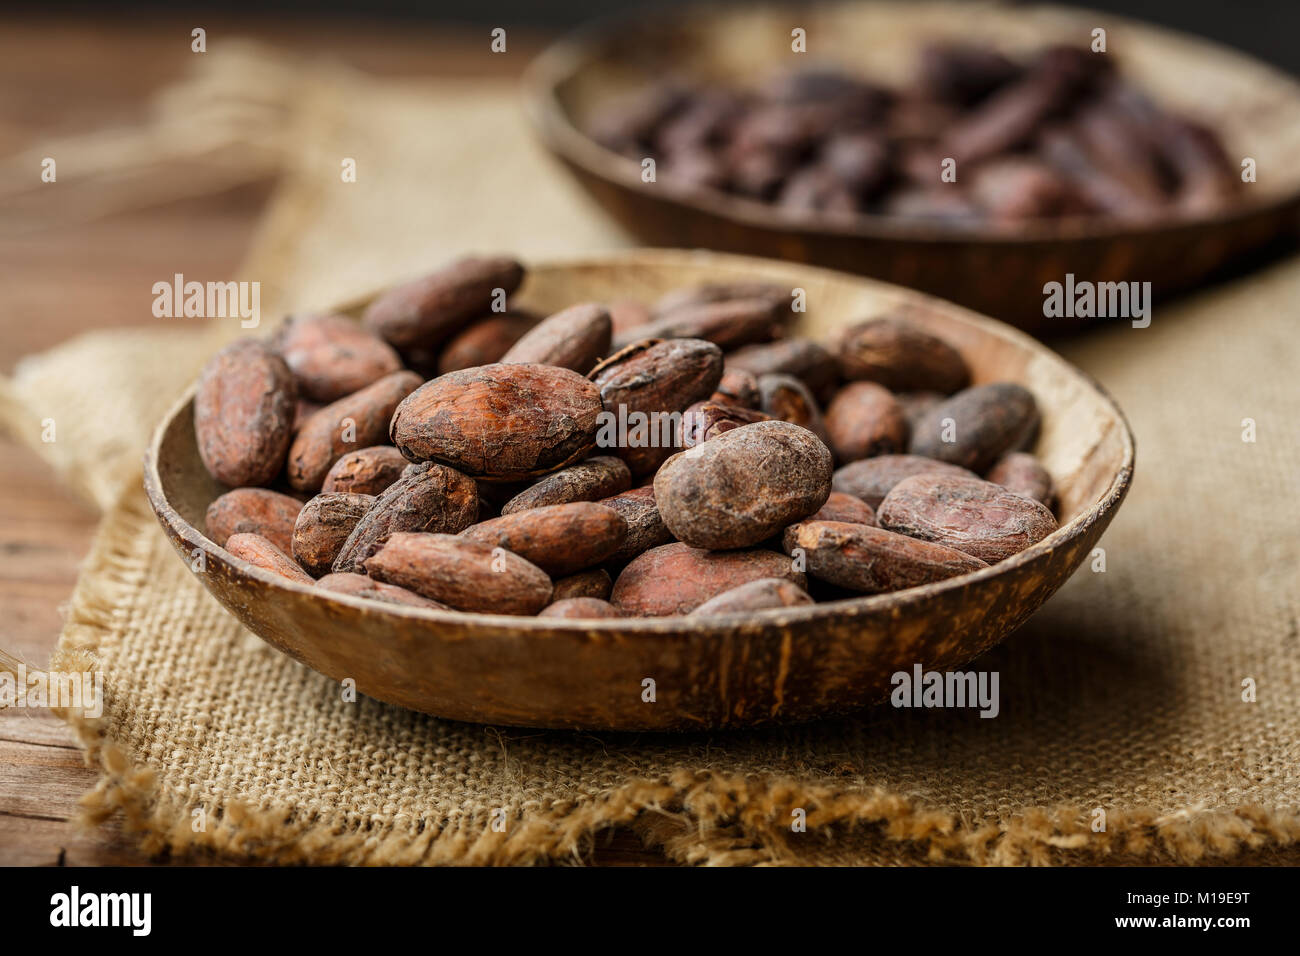 cacao beans in a bowl - Stock Image